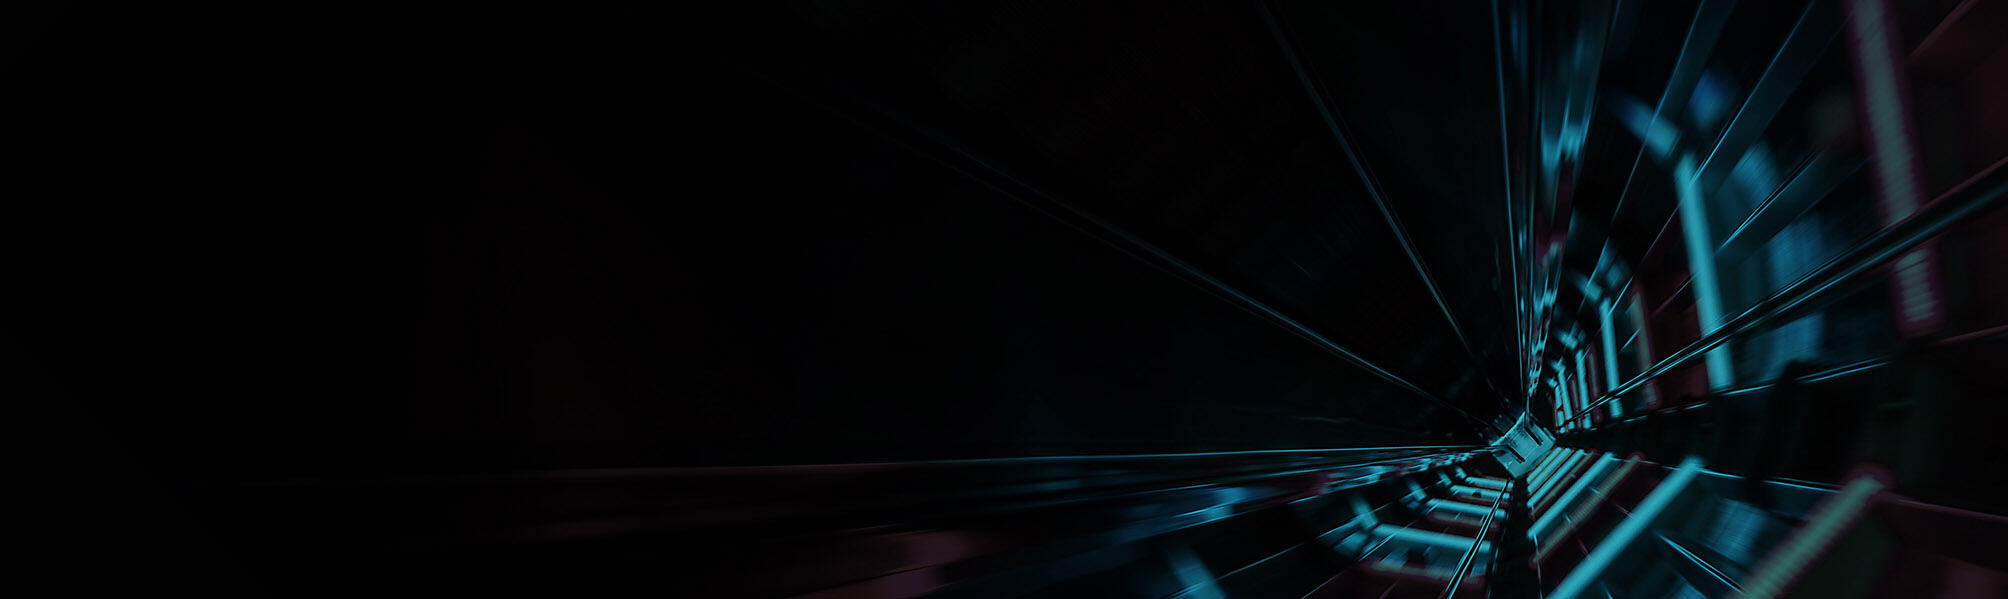 Perspectives edition 15 banner